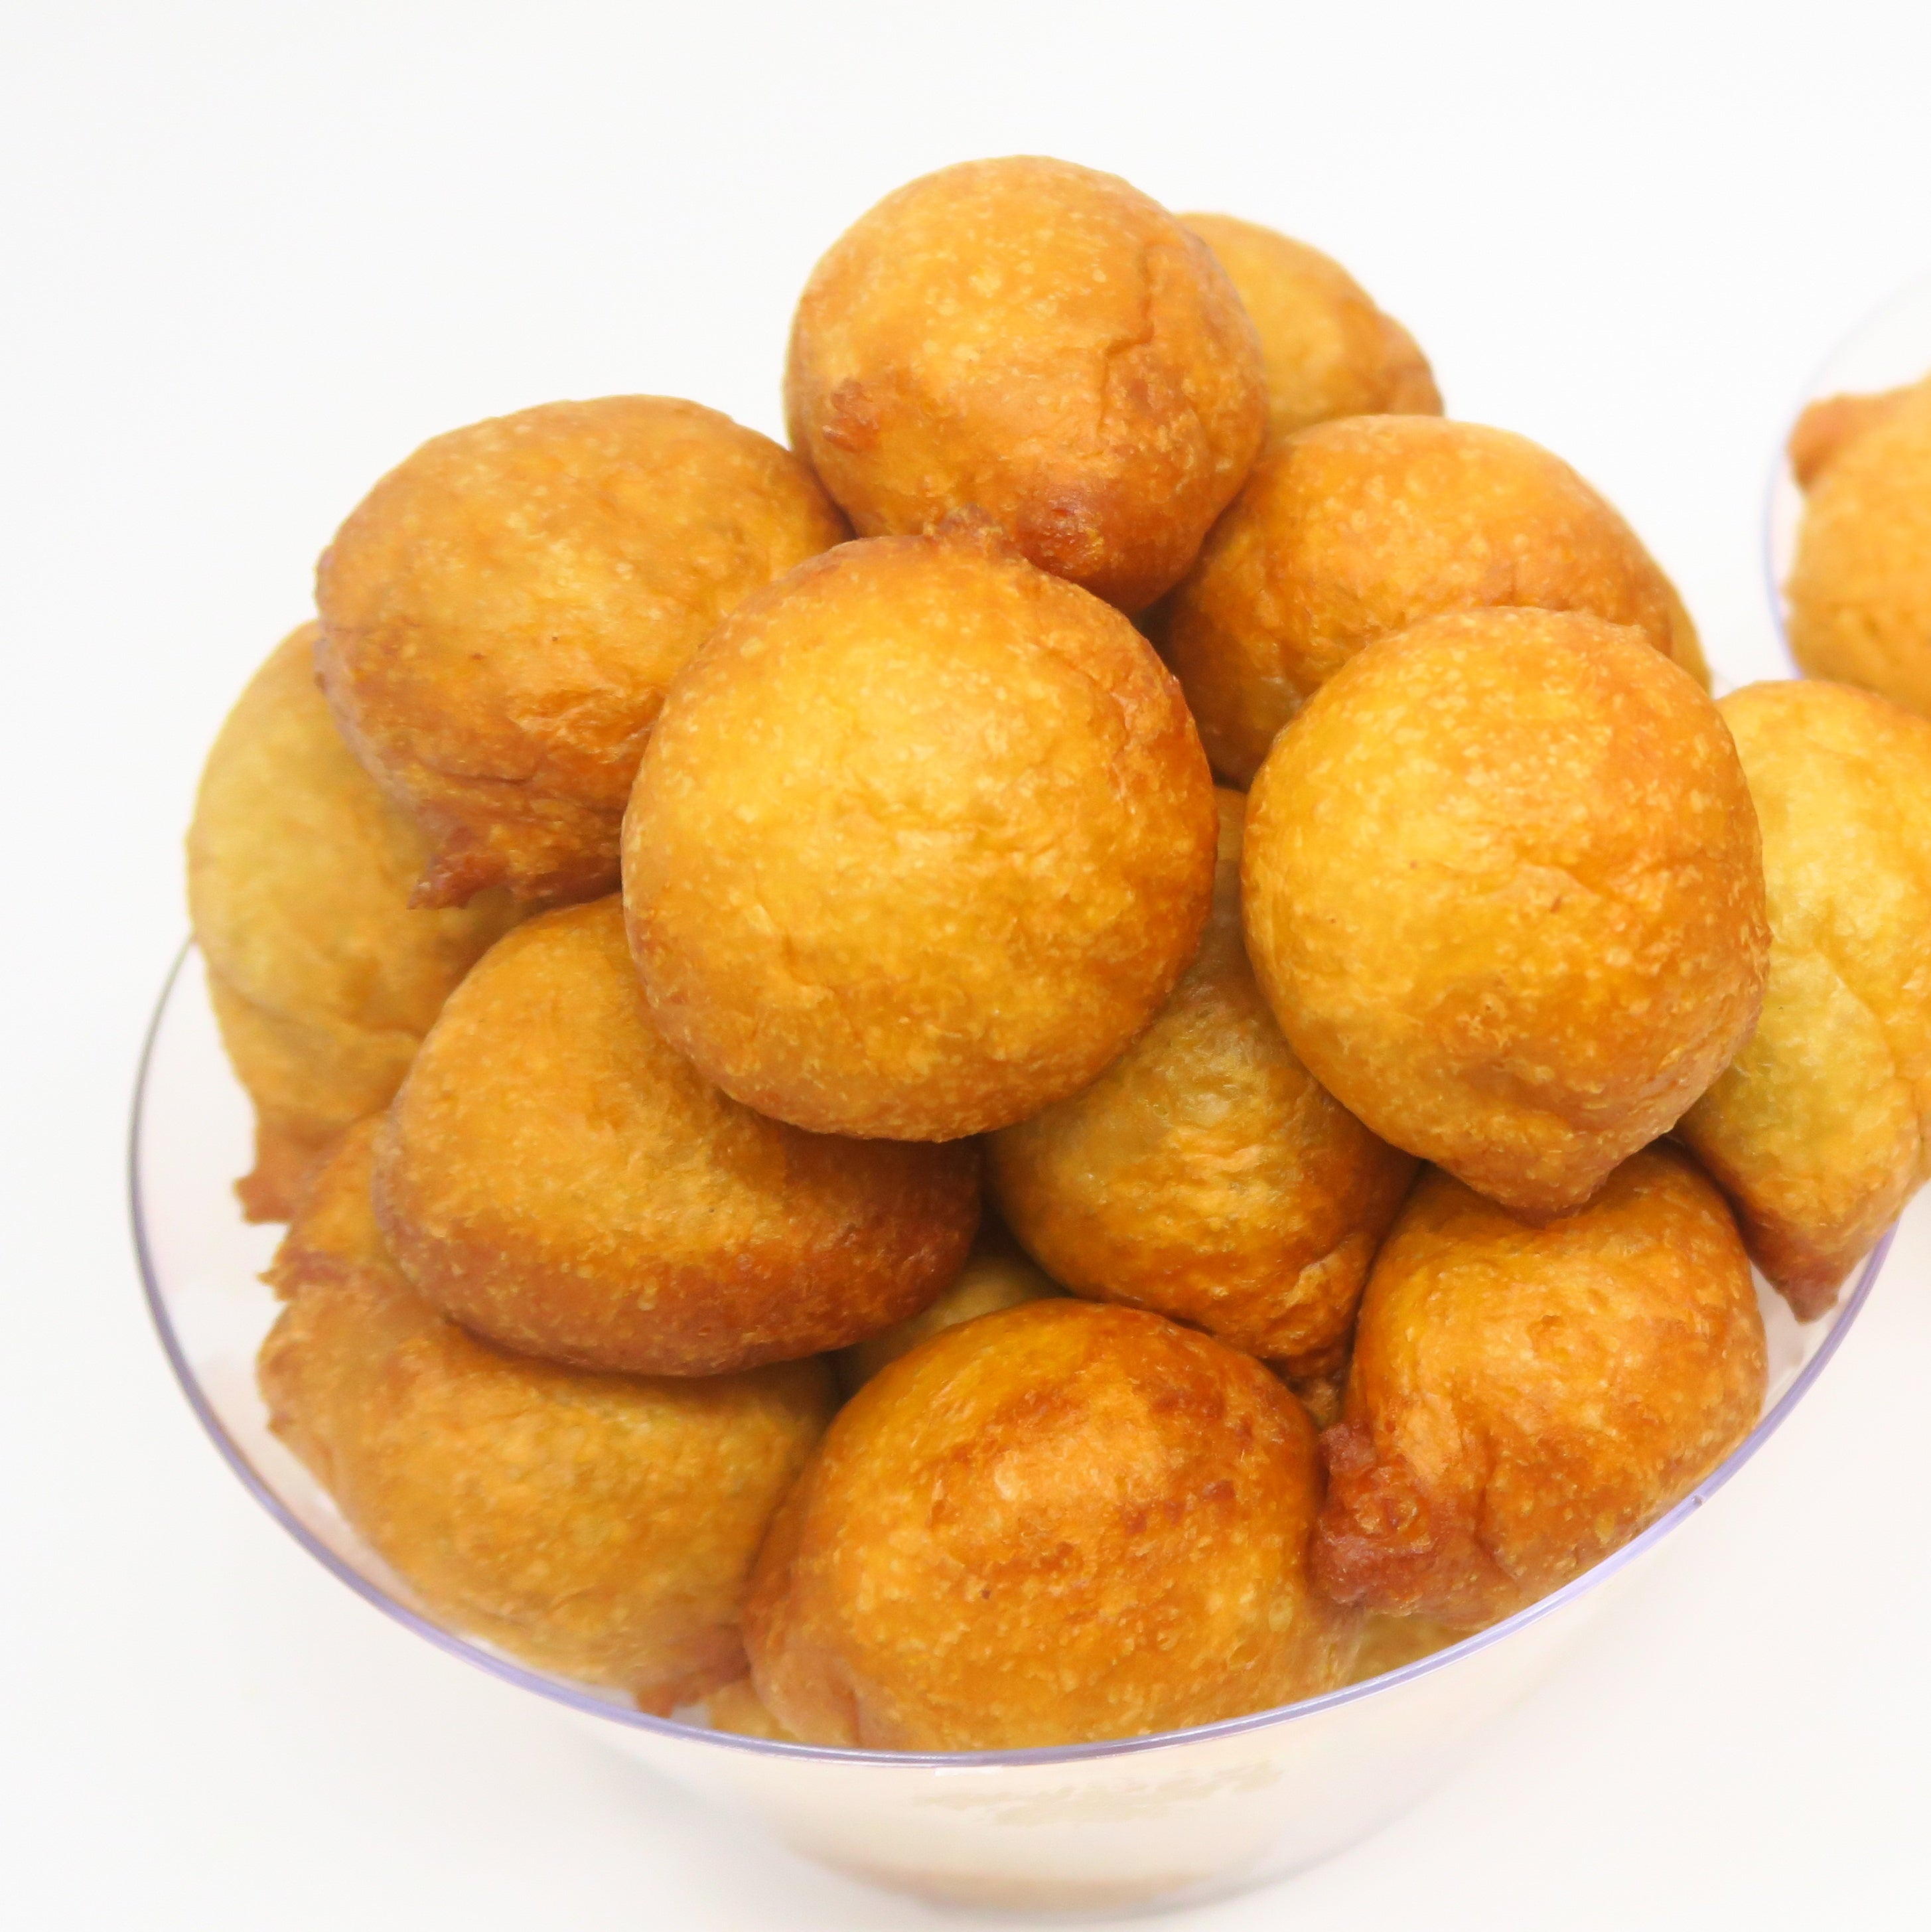 Auntie's Puff Puff, Donut and Chin Chin (3 PACK VARIETY)